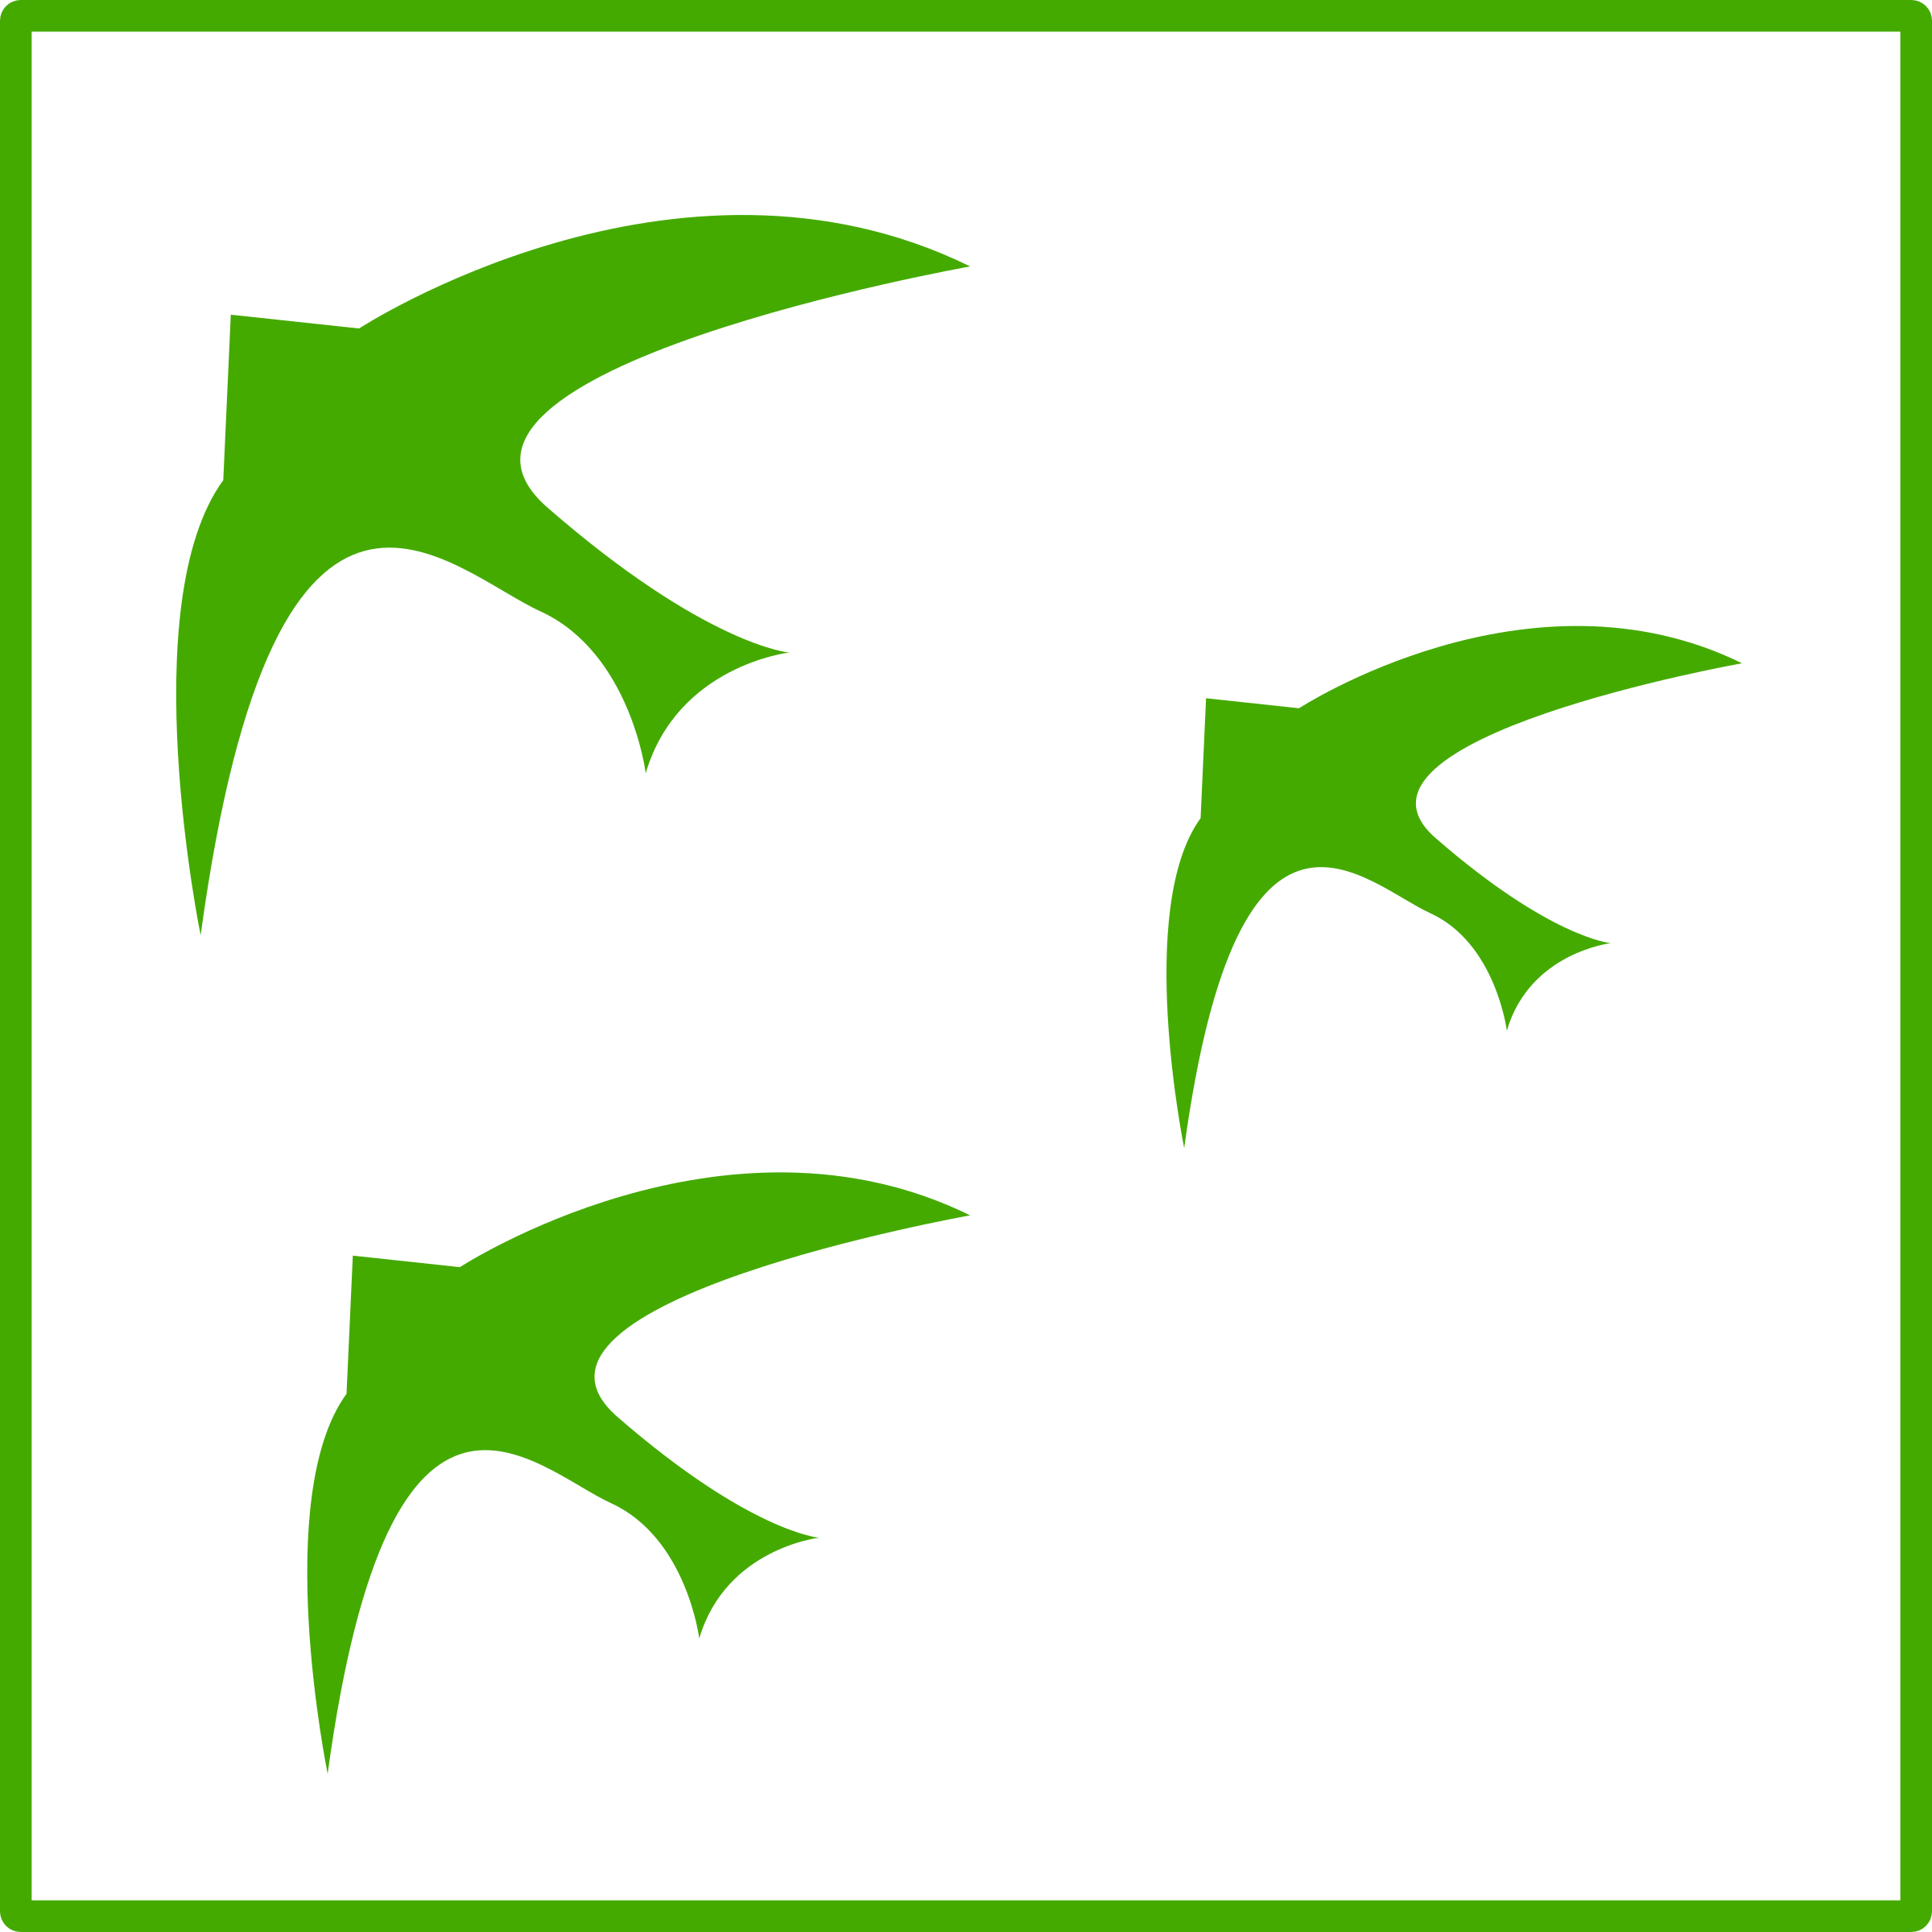 eco green  birds icon  by dominiquechappard